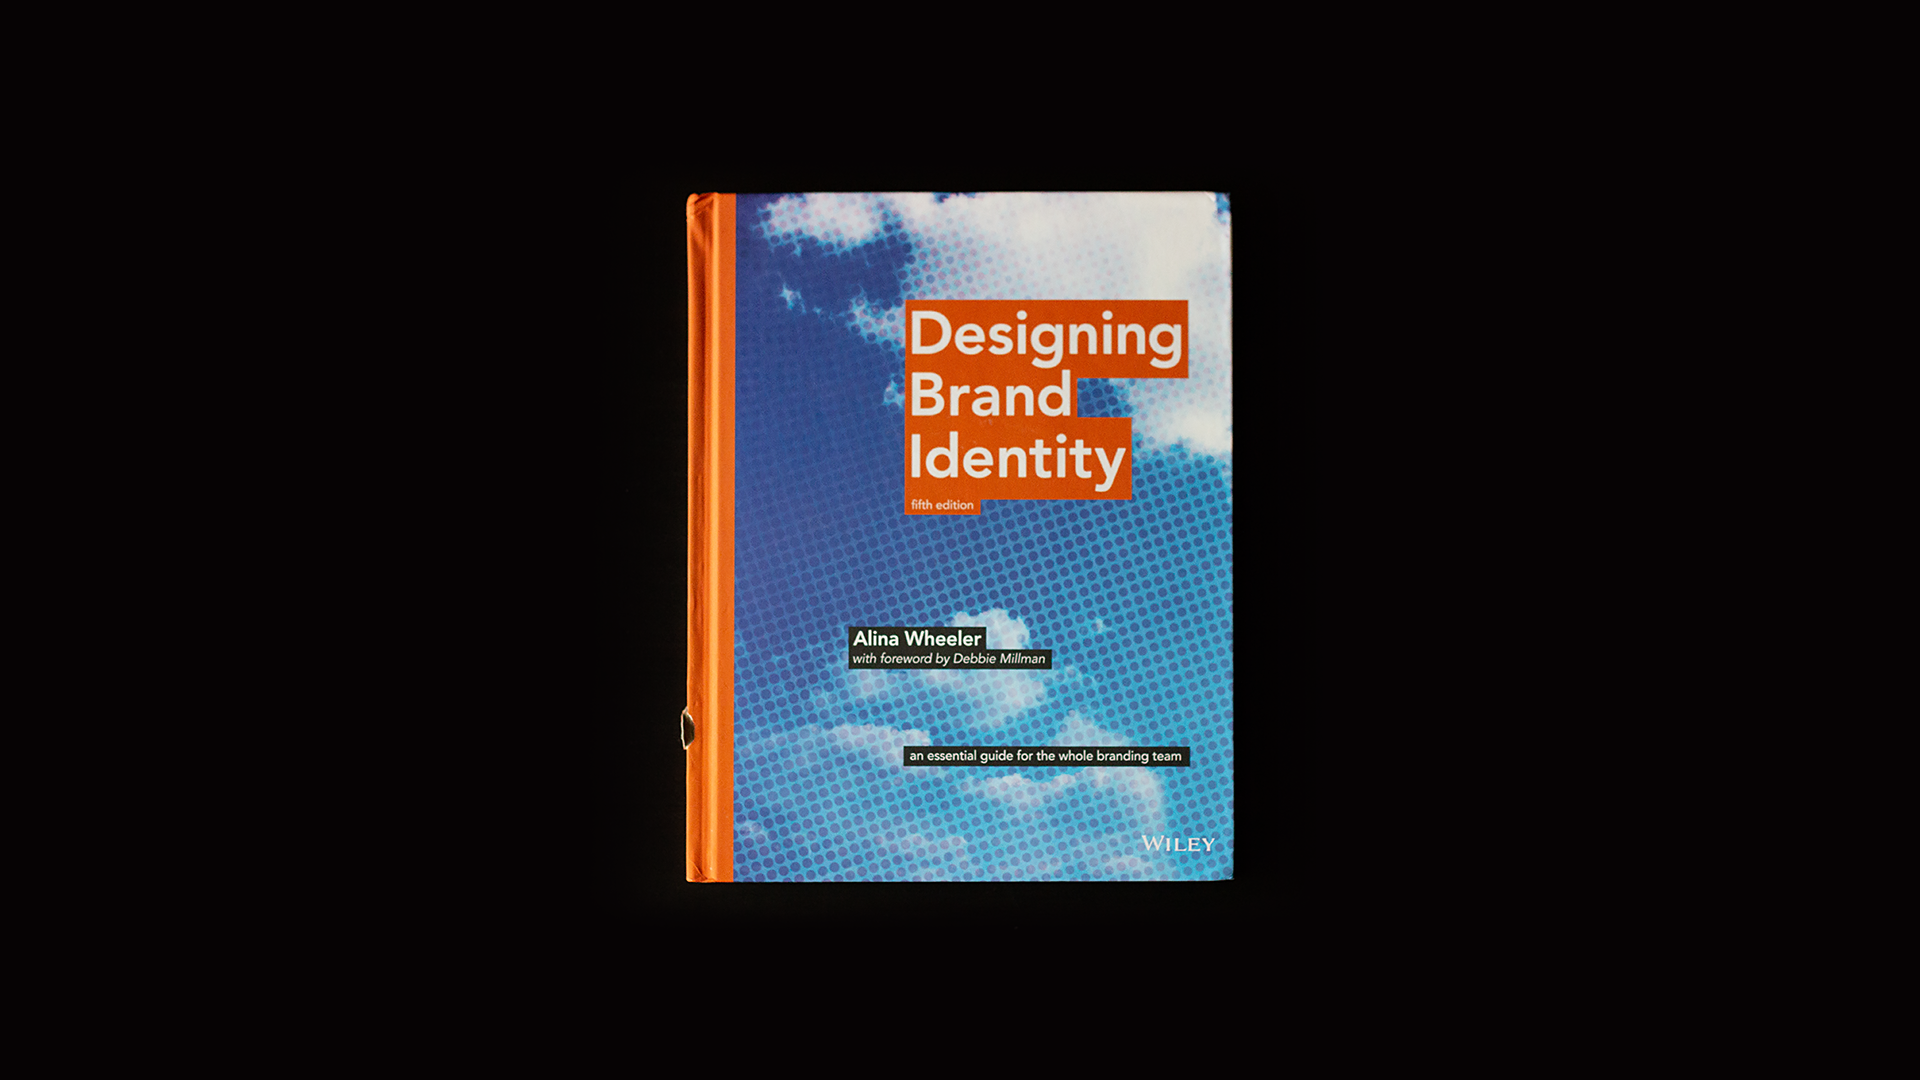 Must Read Books for Graphic Designers - Designing Brand Identity